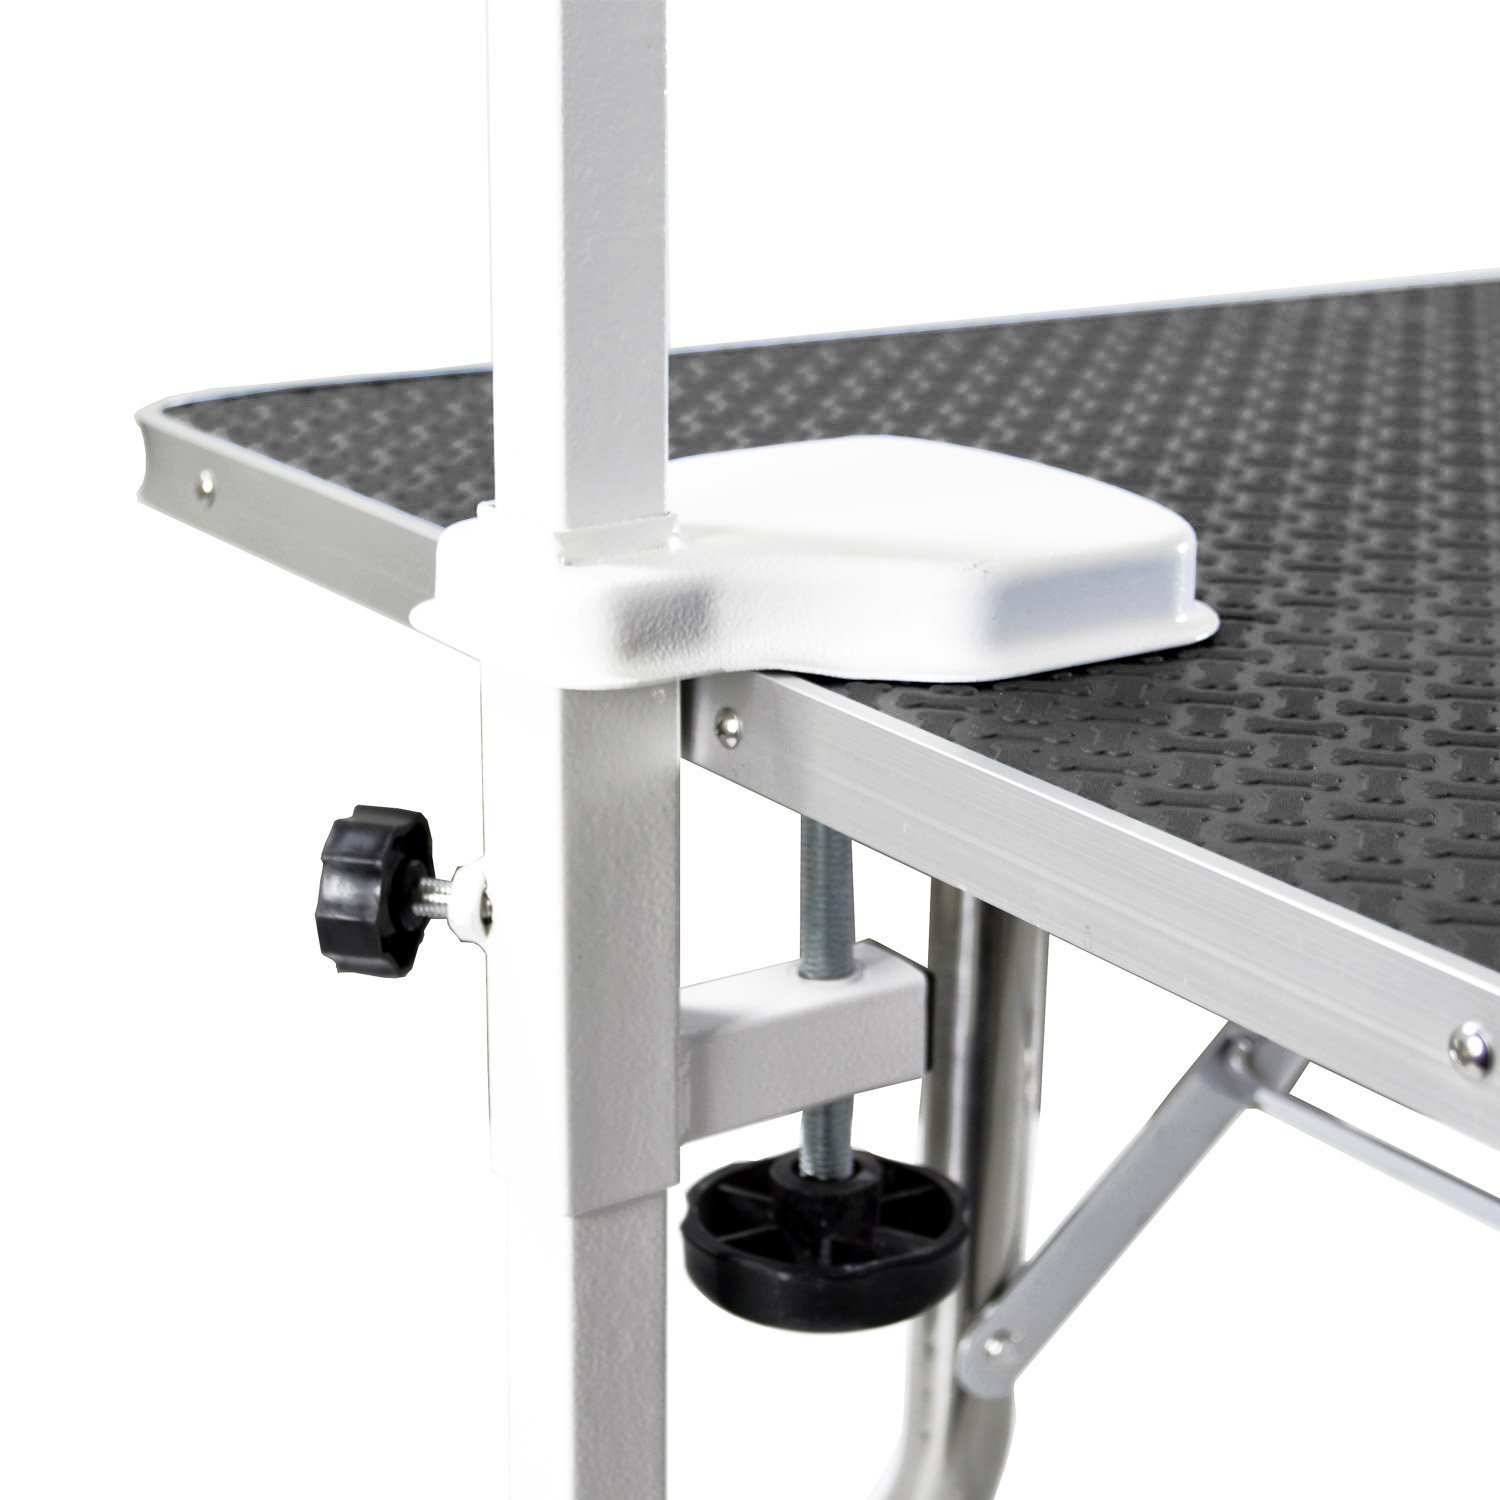 Flying Pig Grooming Medium Stainless Steel Frame Foldable Dog Pet Table, 38'' by 22'', Black by Flying Pig Grooming (Image #3)